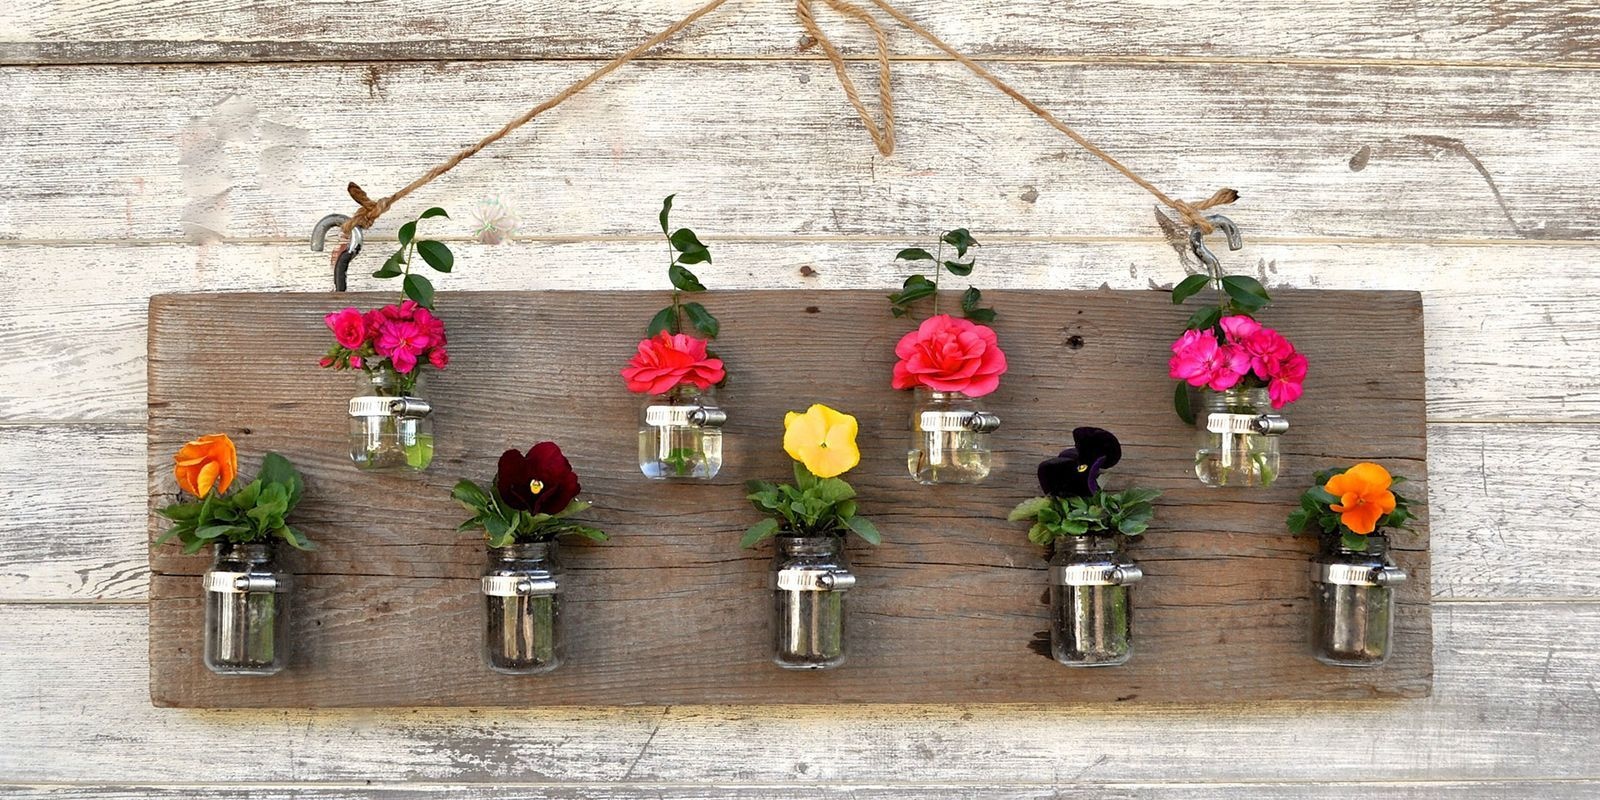 9 Creative Planters Made From Old Junk & 9 Unique DIY Planters - How To Make a Planter